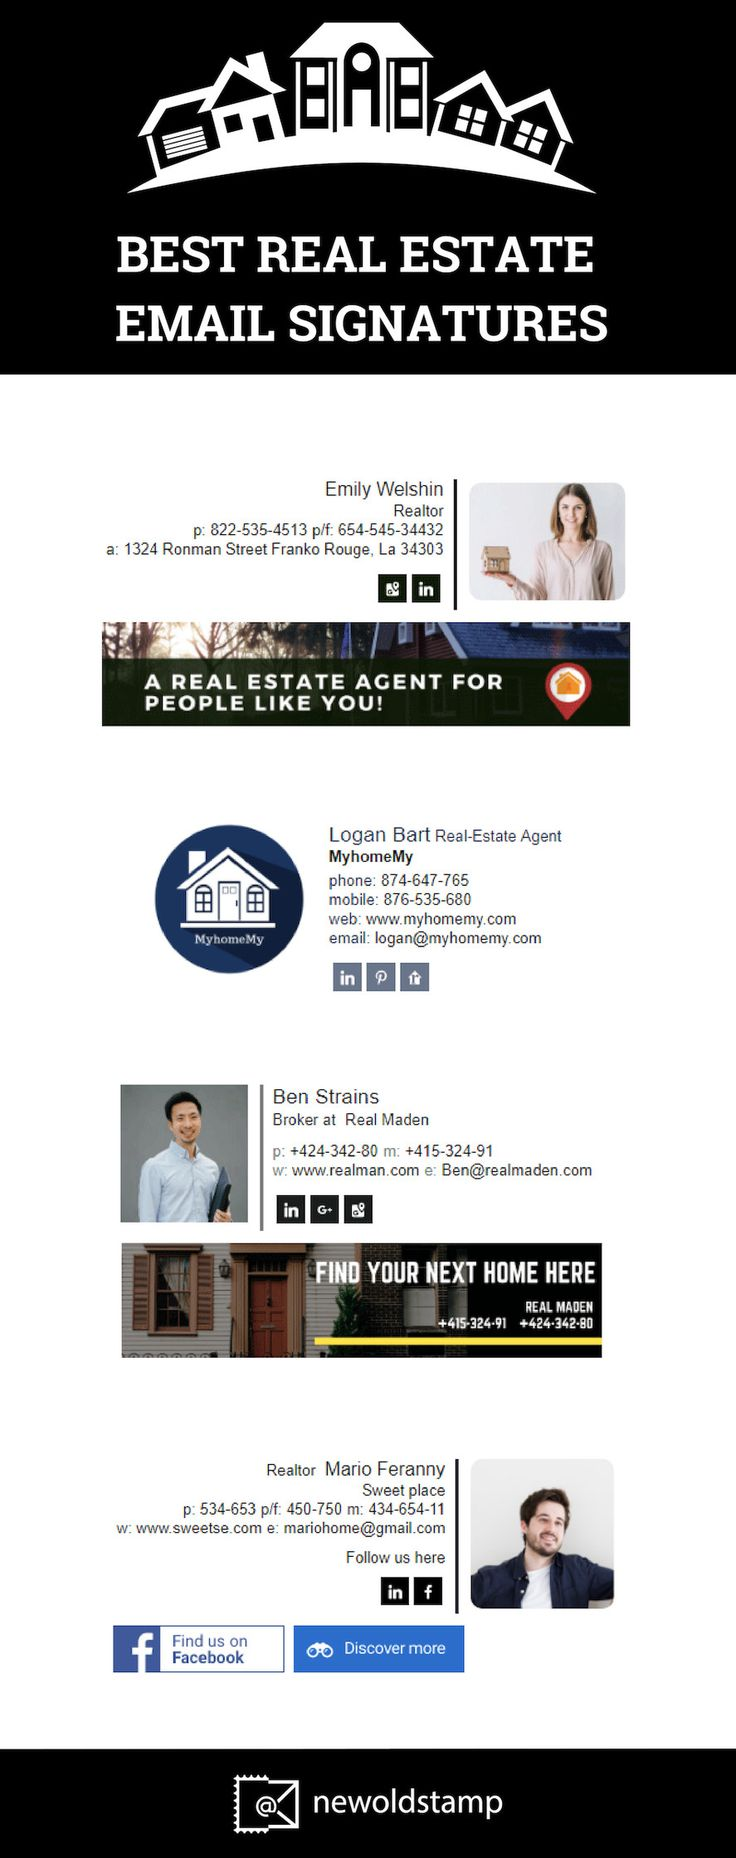 Best real estate email signatures created by NEWOLDSTAMP